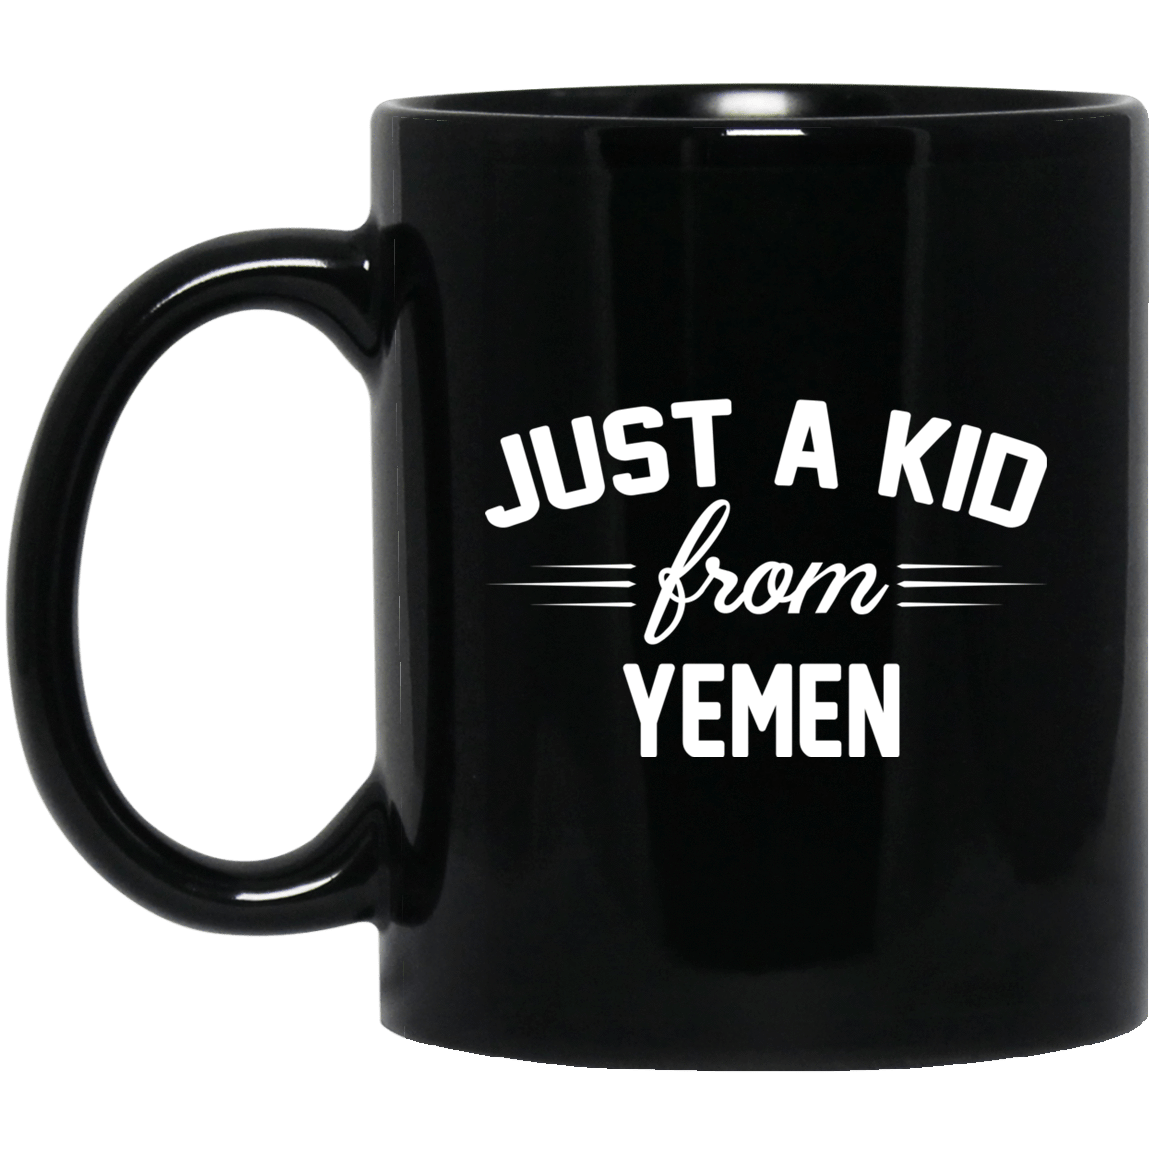 Just A Kid Store | Yemen Mug 1065-10181-72111091-49307 - Tee Ript